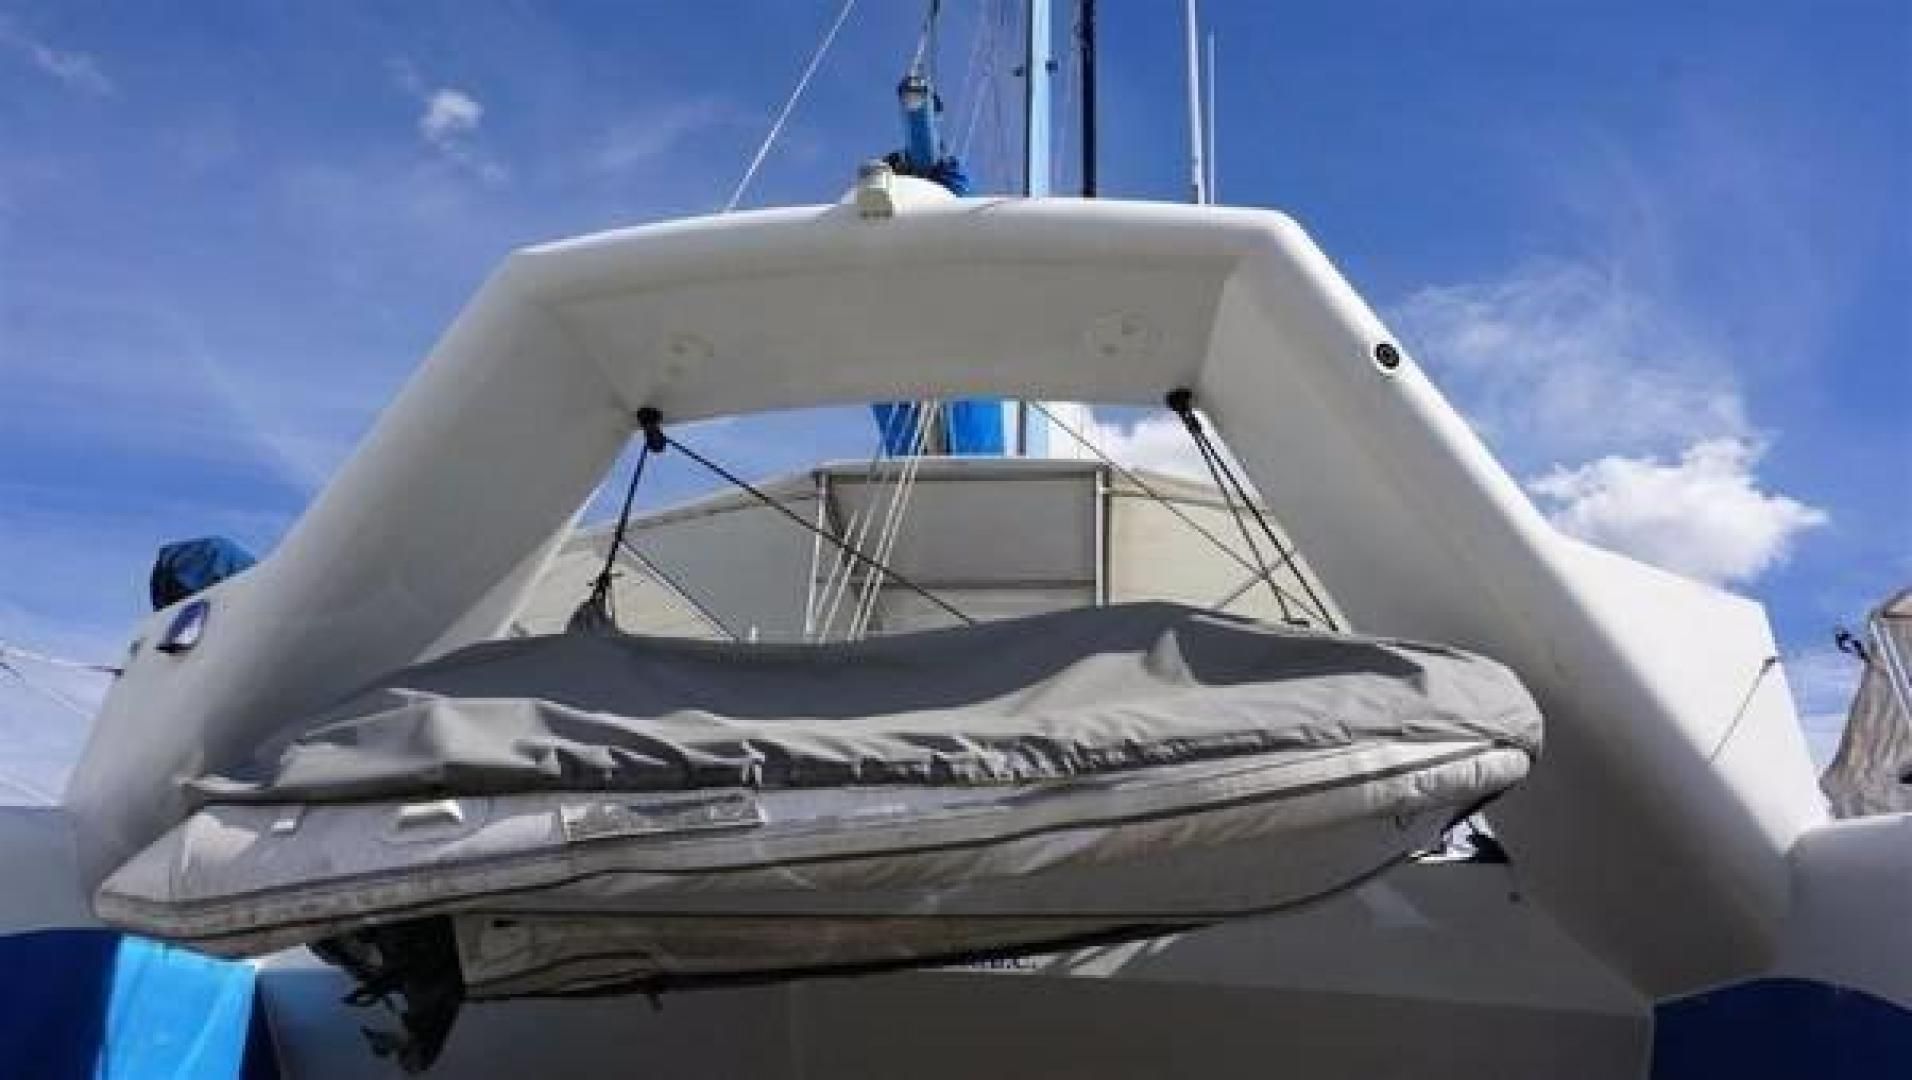 Custom-Simpson Slipstream 15 1998-Journey II Gibsons-British Columbia-Canada-Dinghy-1285621 | Thumbnail